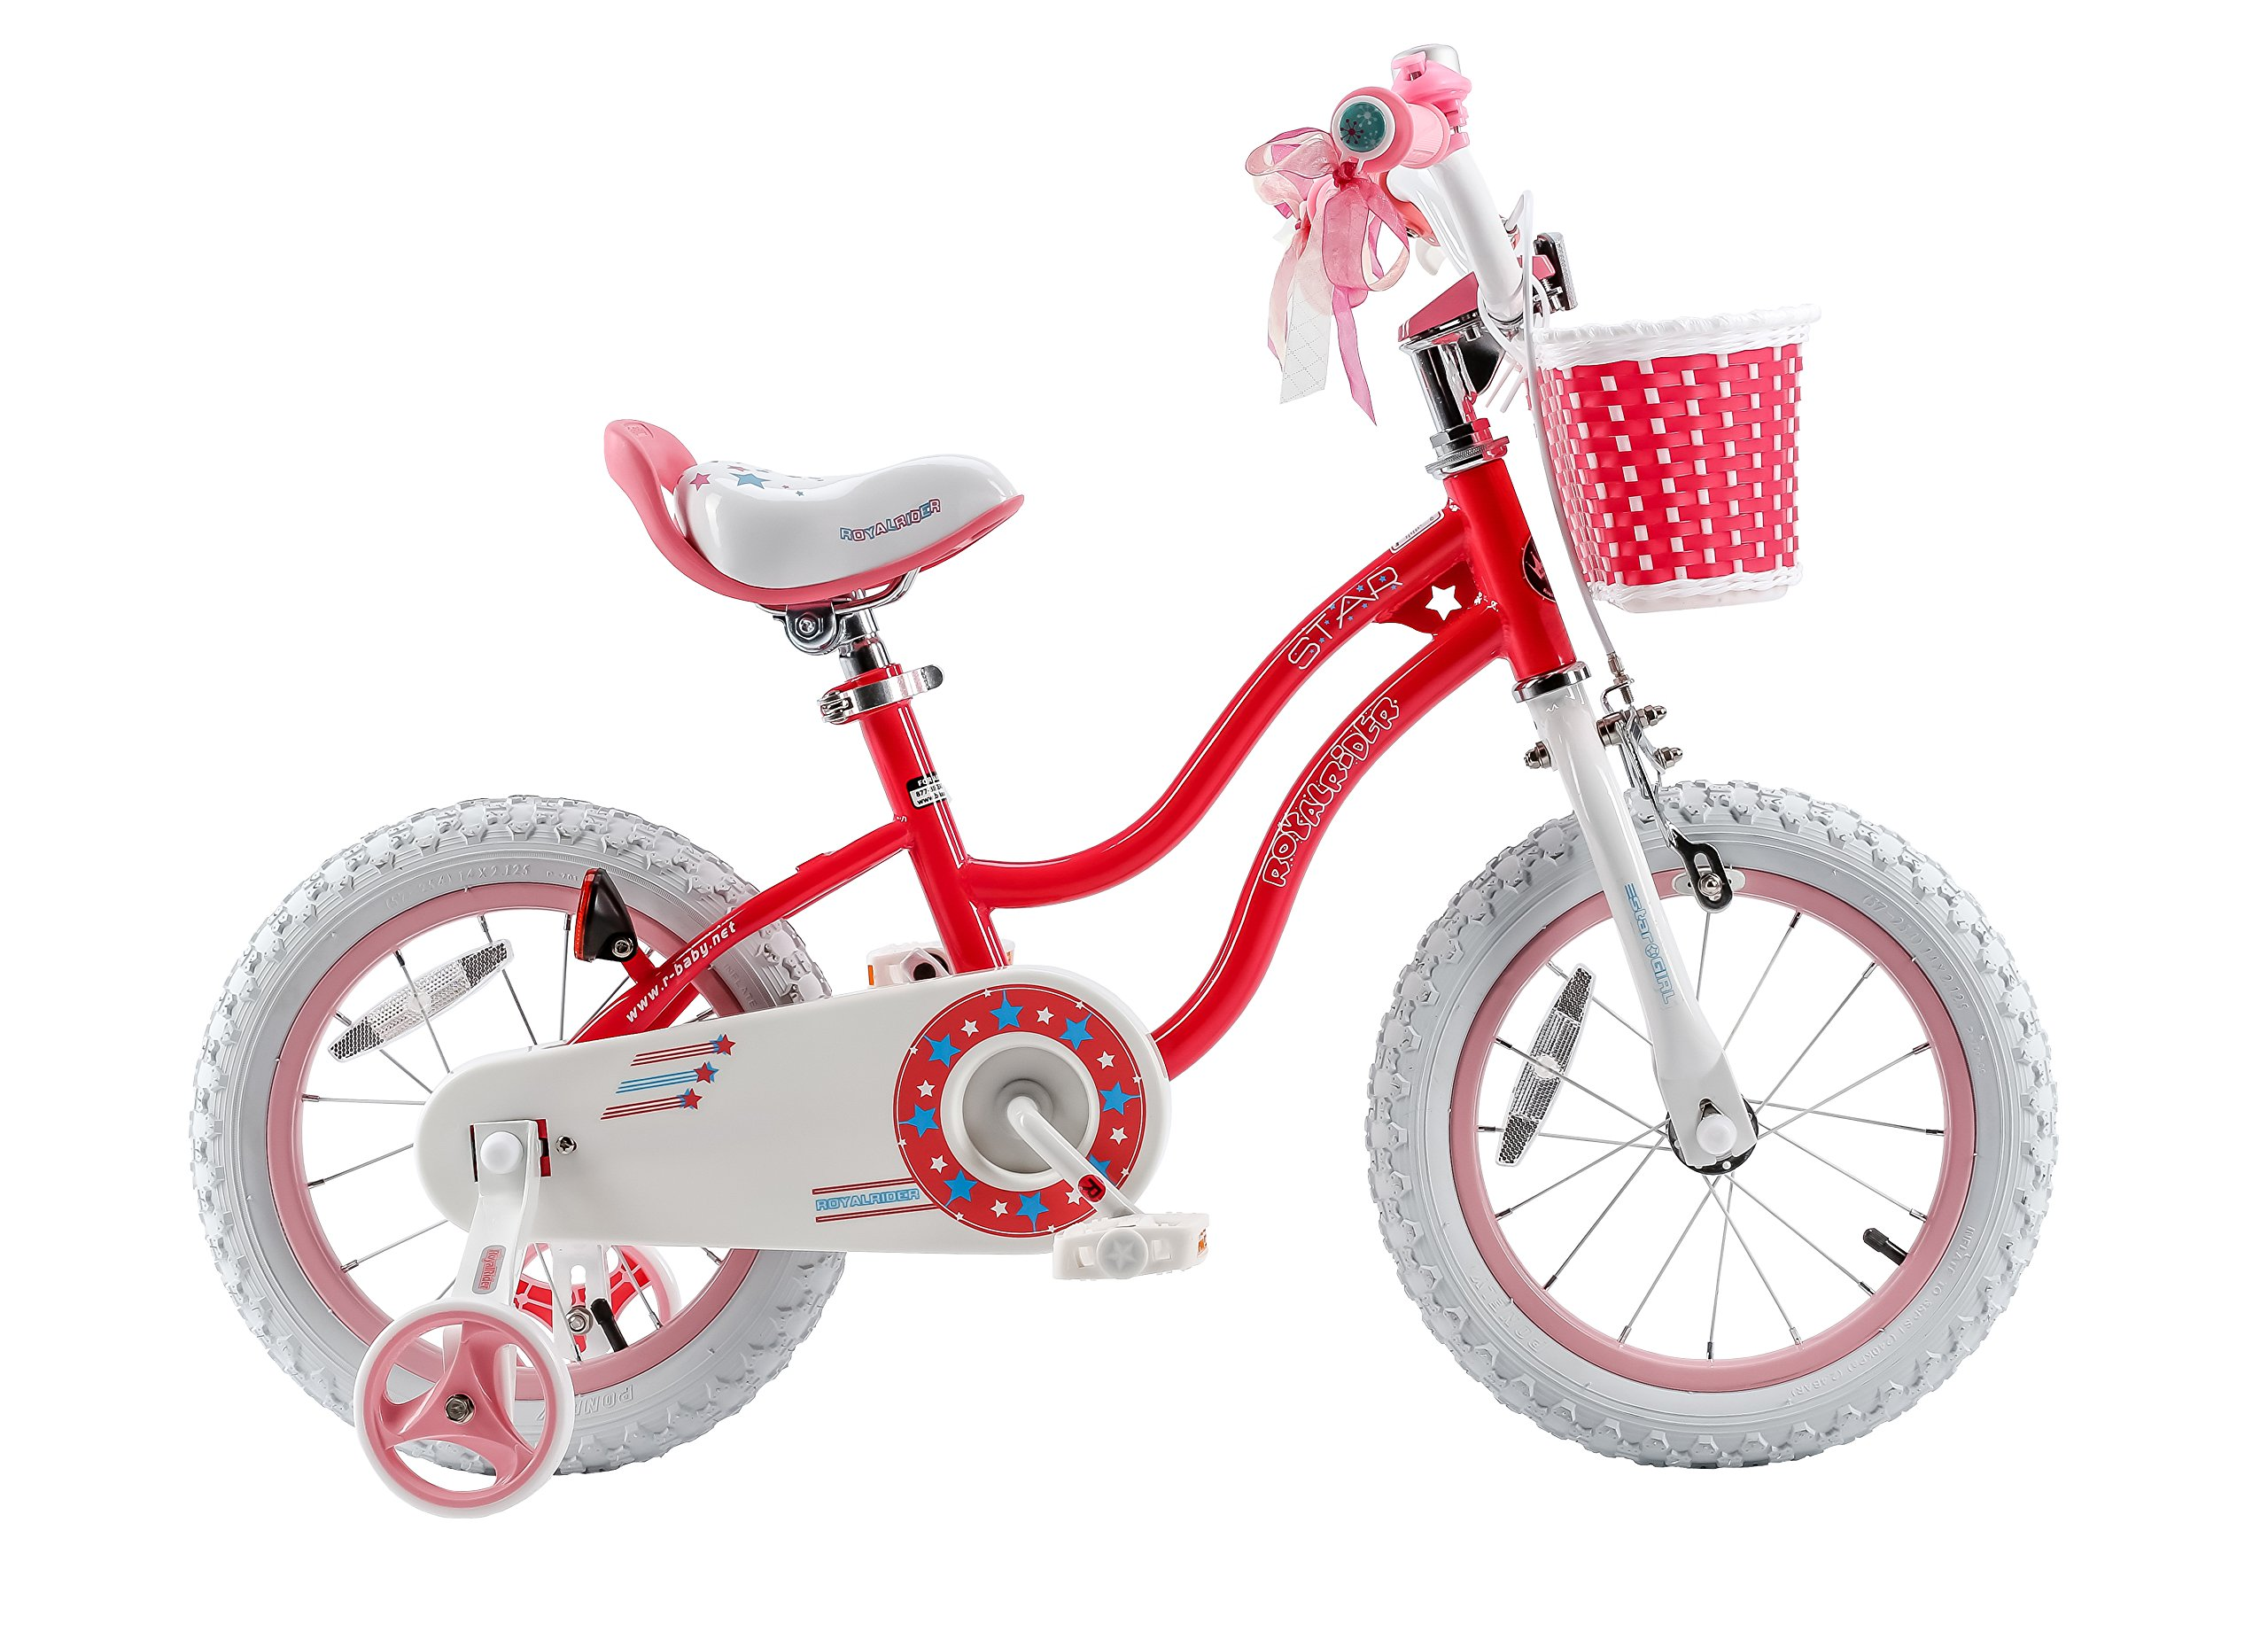 Royalbaby Stargirl Girl's Bike with Training Wheels and Basket, Perfect Gift for Kids. 16 Inch Wheels, Pink